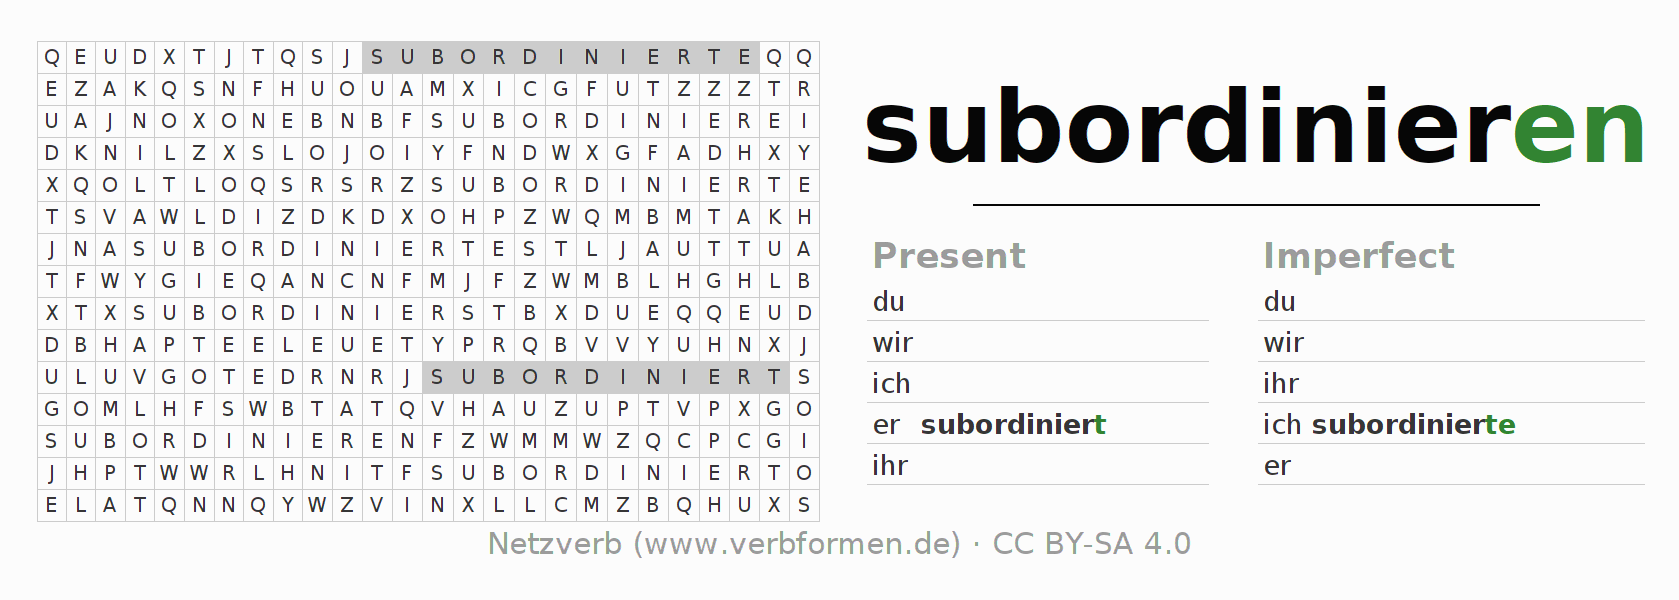 Word search puzzle for the conjugation of the verb subordinieren